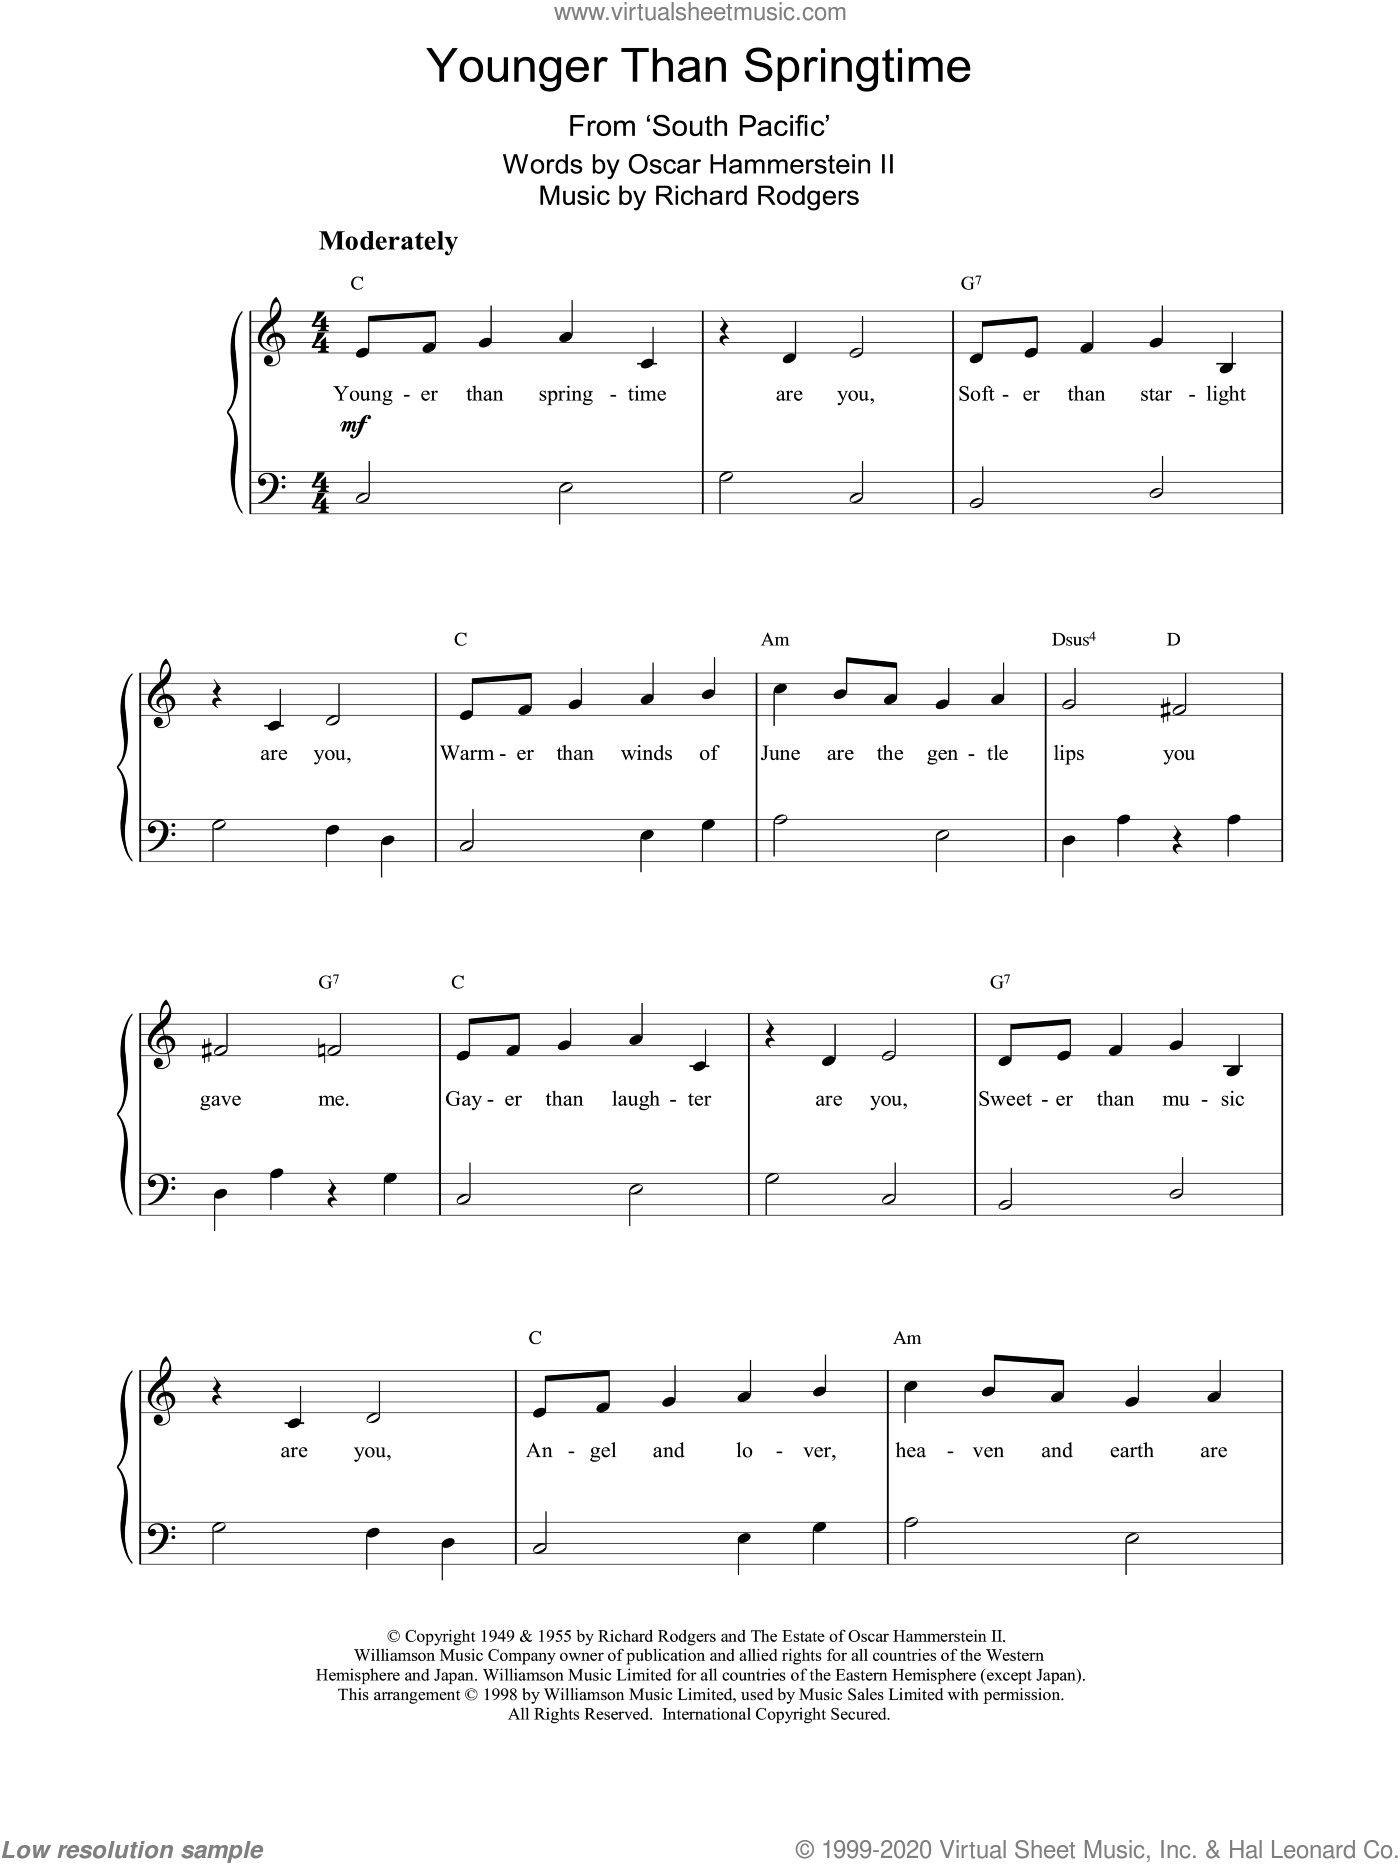 Younger Than Springtime, (easy) sheet music for piano solo by Rodgers & Hammerstein, South Pacific (Musical), Oscar II Hammerstein and Richard Rodgers, easy skill level